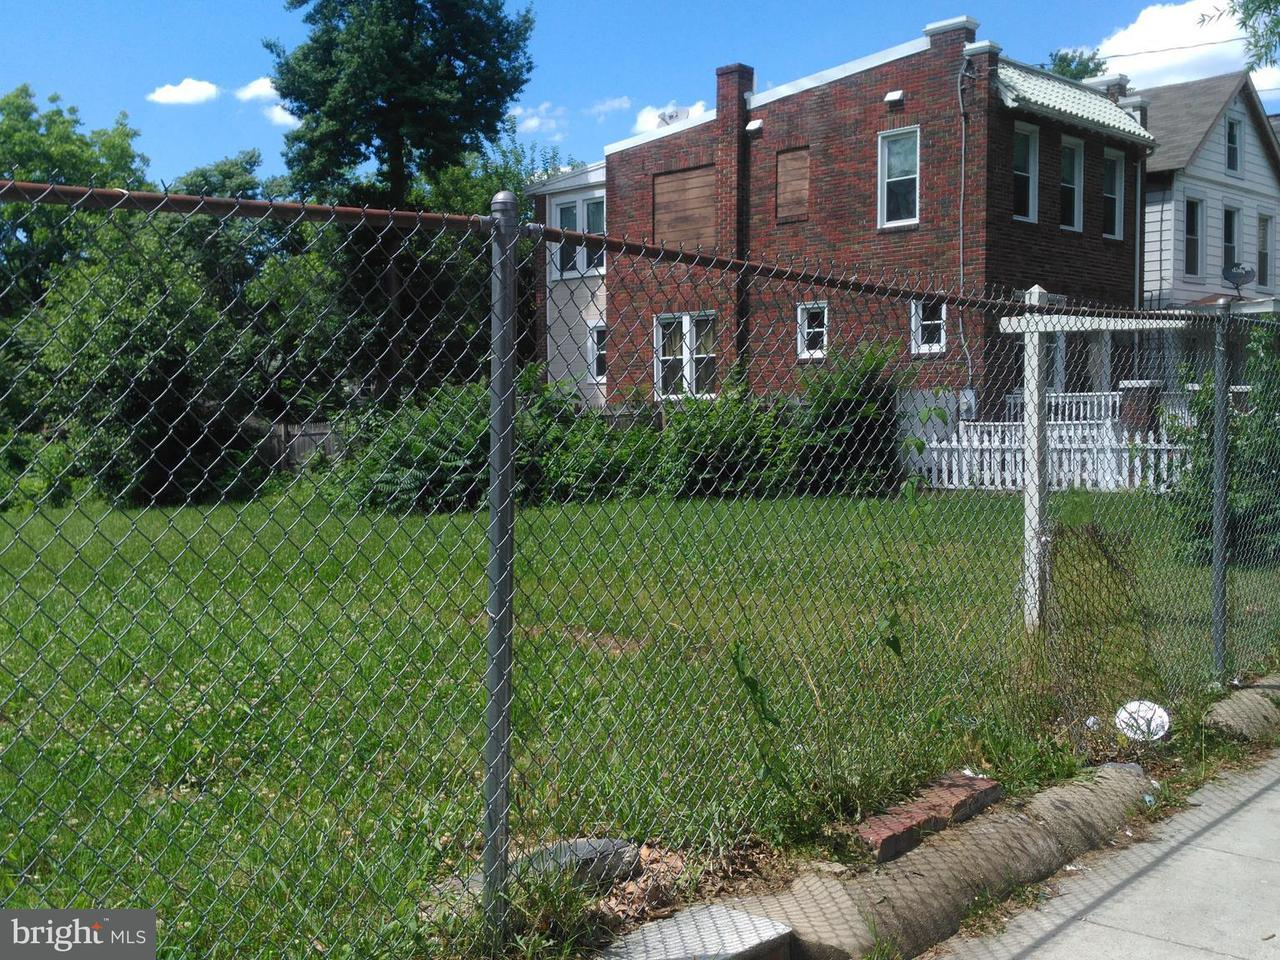 Land for Sale at 3341 Martin Luther King Jr Ave SE Washington, District Of Columbia 20032 United States